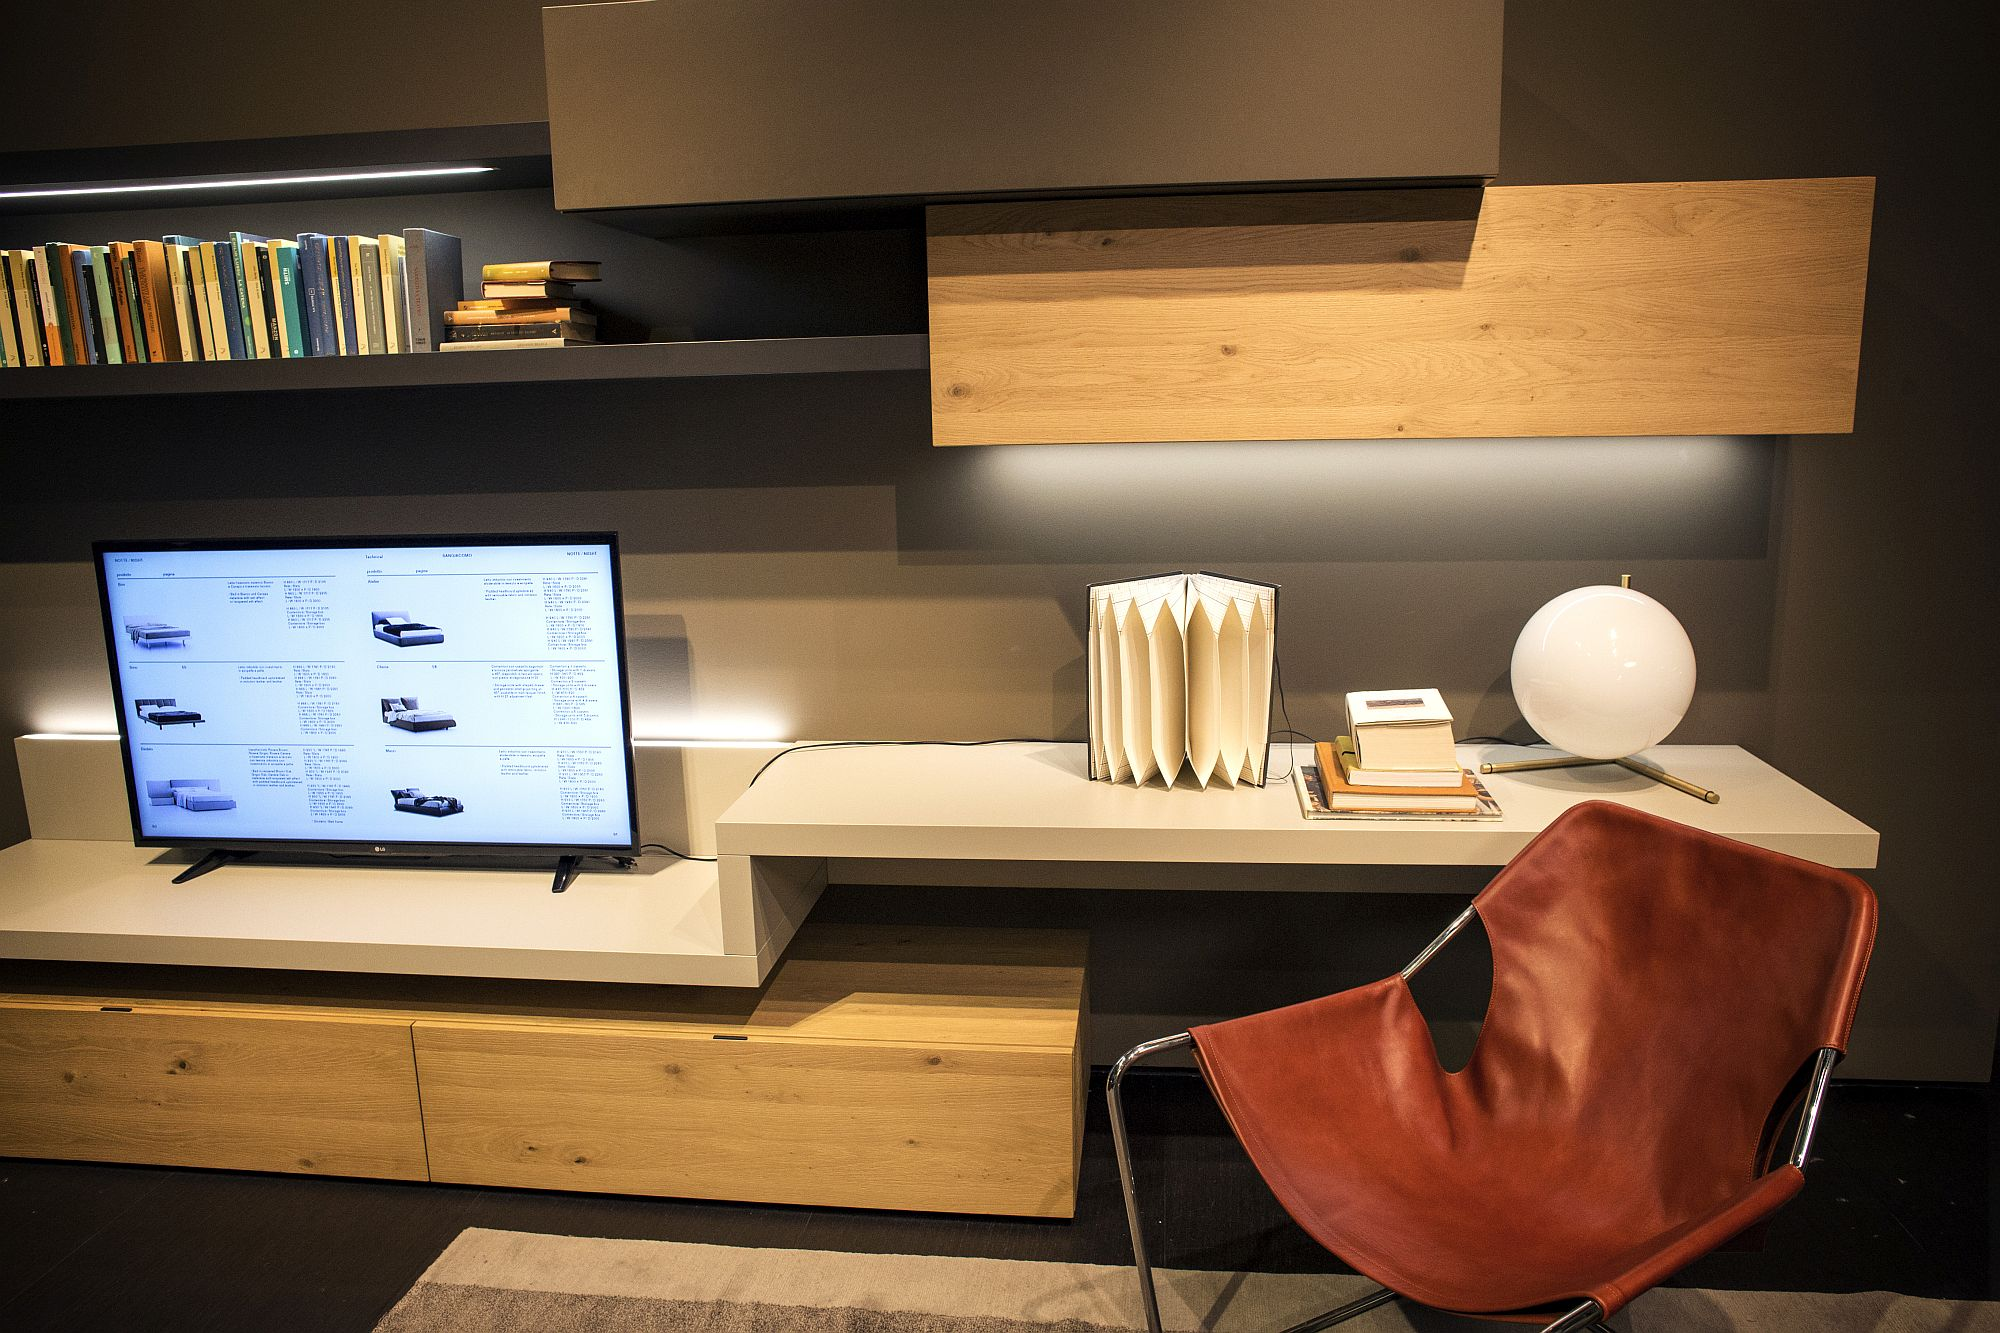 Comfy-chair-turns-the-floating-shelf-into-an-ergonomic-workstation